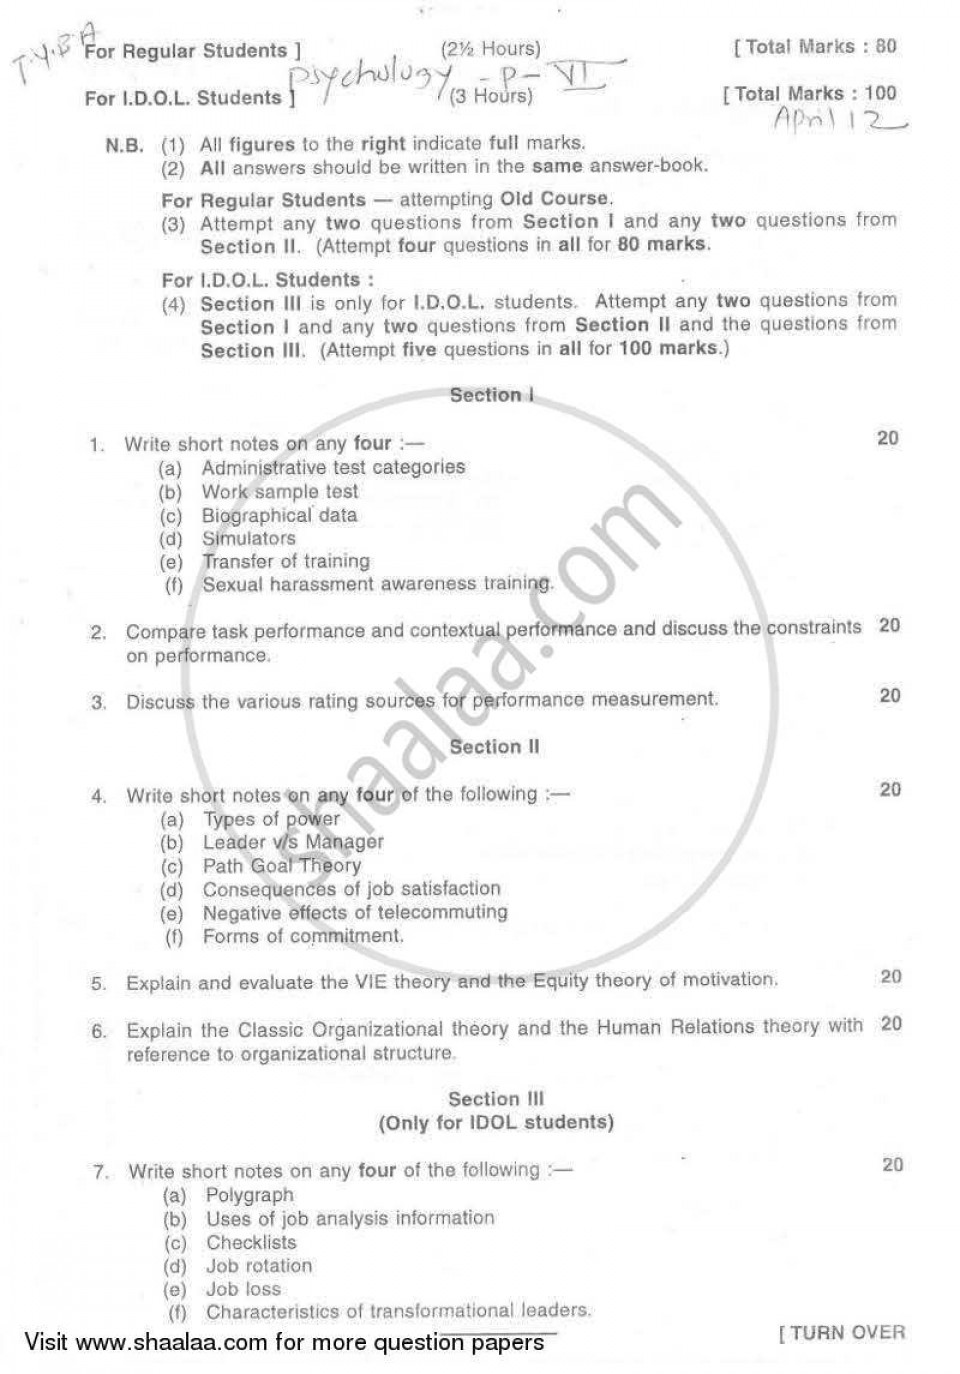 017 Psychologyearch Paper On Dreams University Of Mumbai Bachelor Industrial Organizational T Y Yearly Pattern Semester Tyba 2011 29a03925dfc524f2aa4cb10e4d3da996a Singular Psychology Research Topics Articles 960